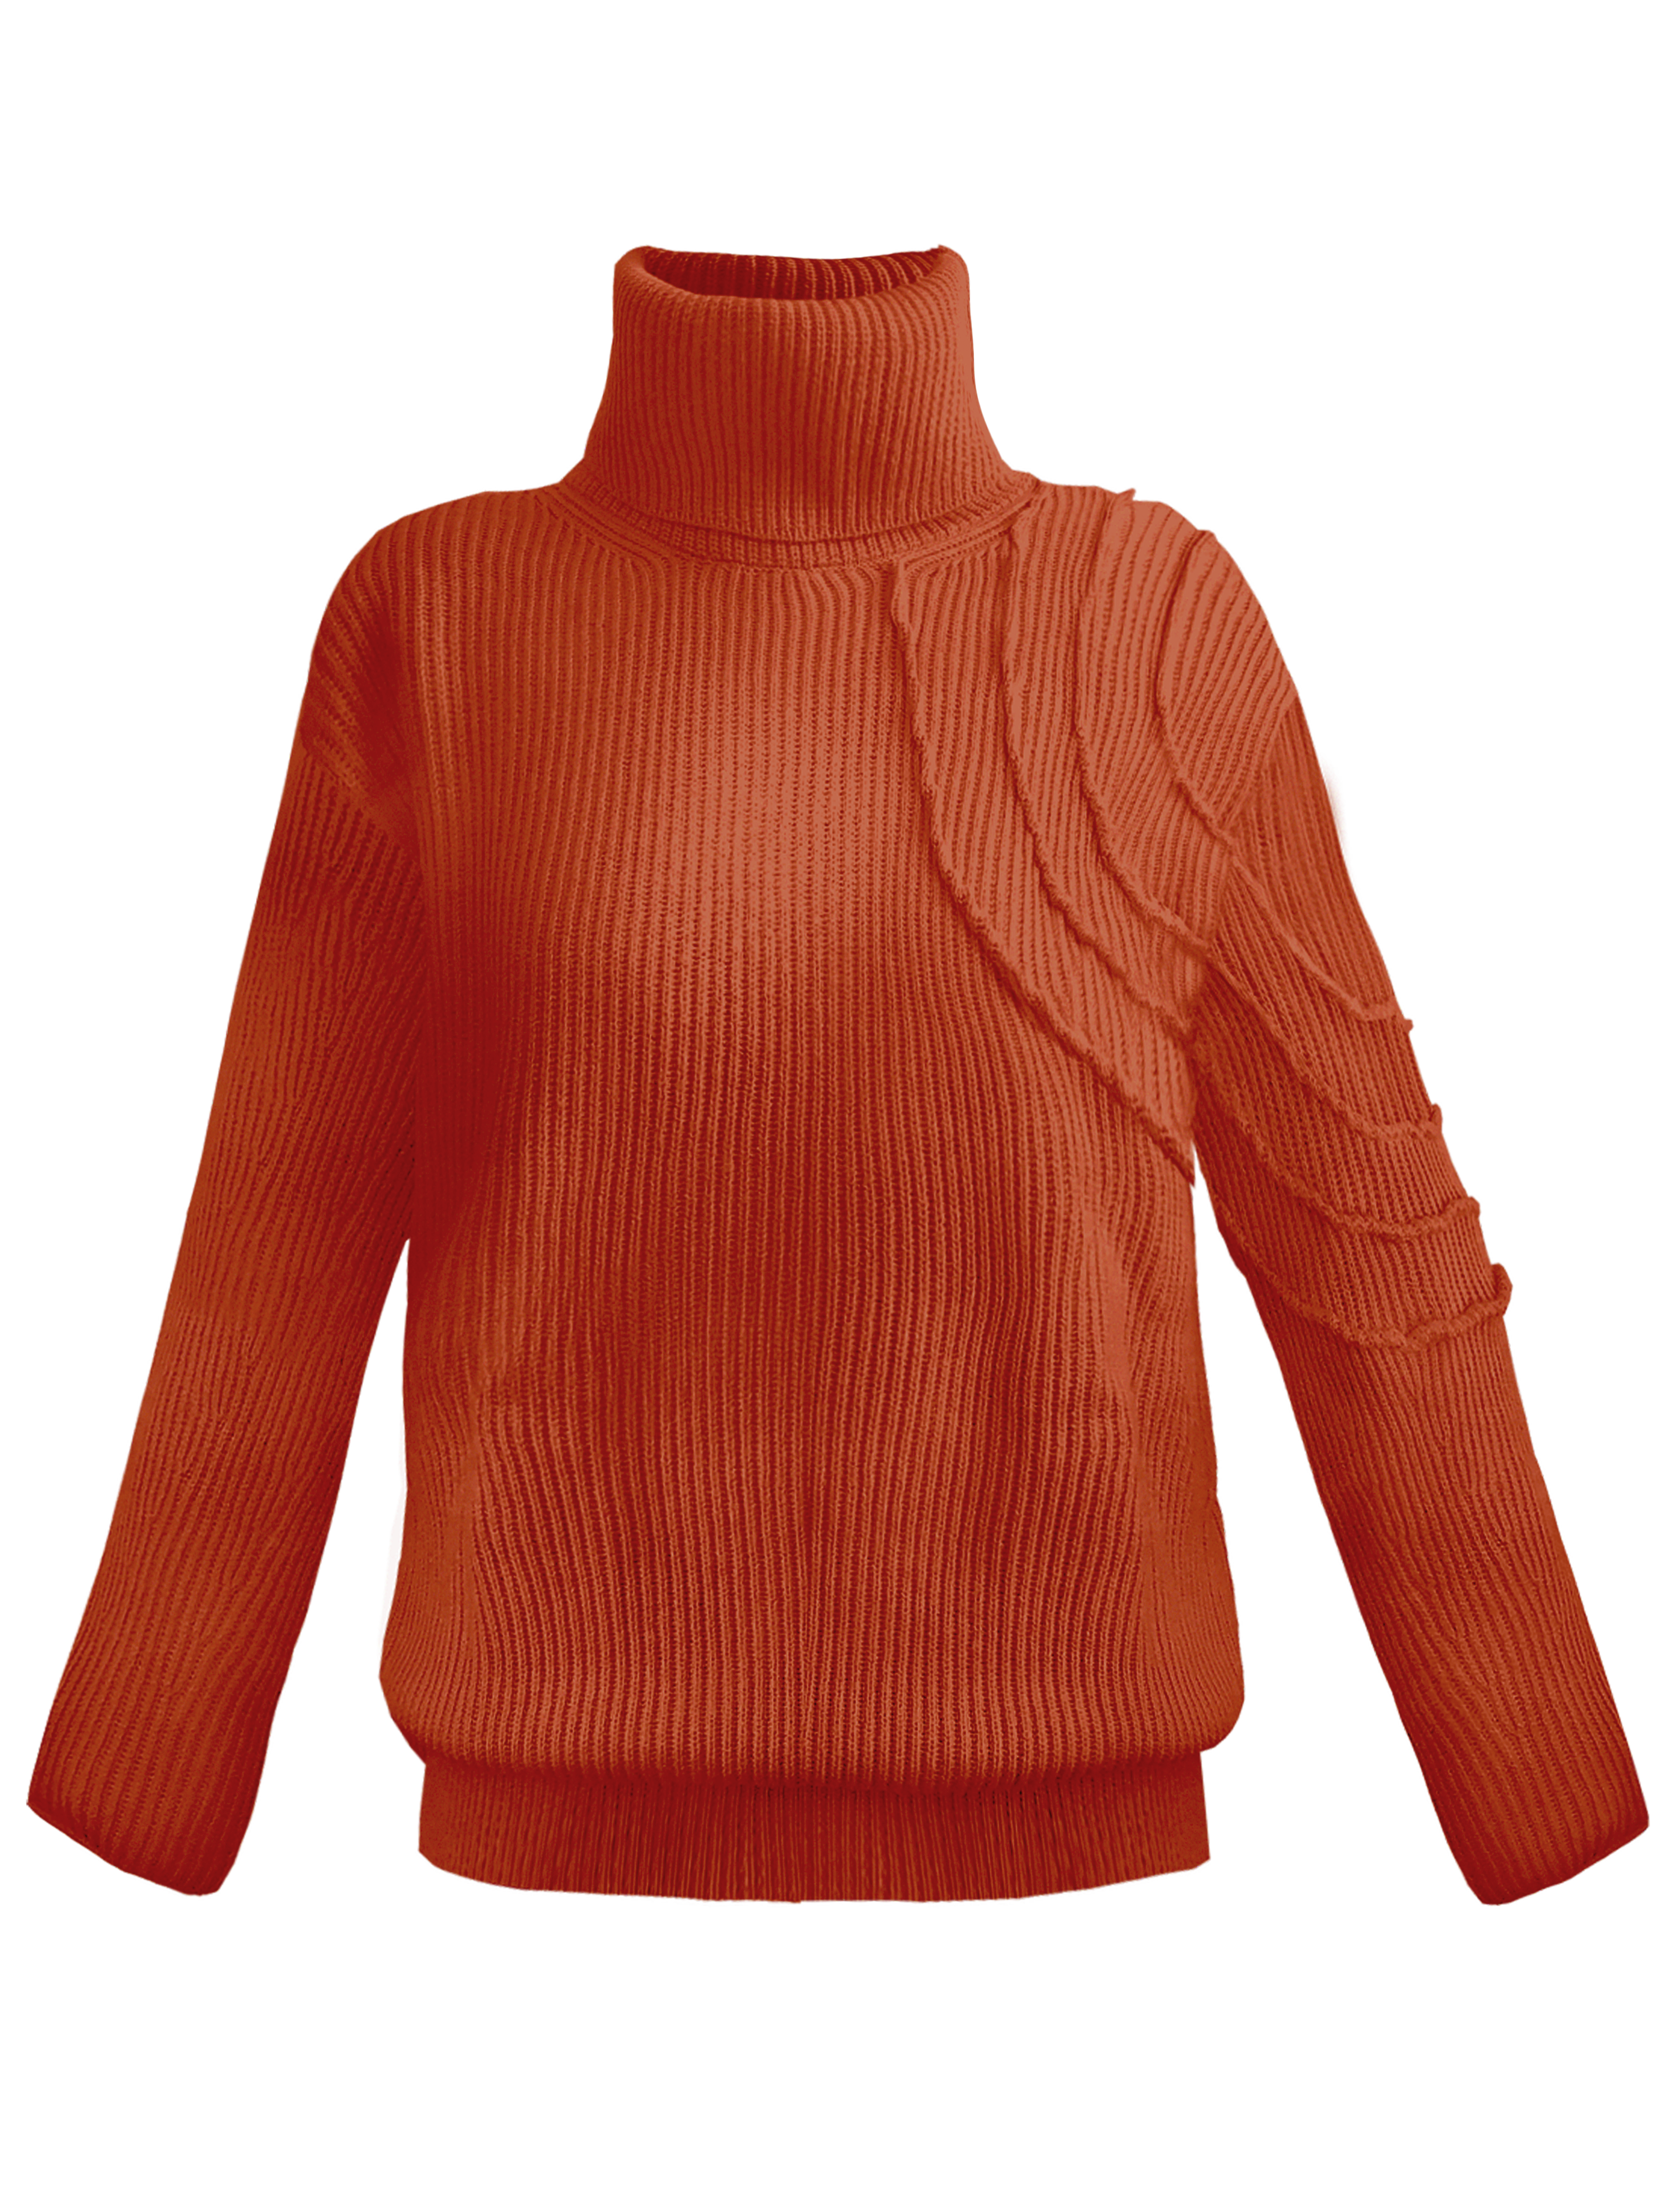 Lucid Turtleneck - Red by Georgia Hardinge on curated-crowd.com